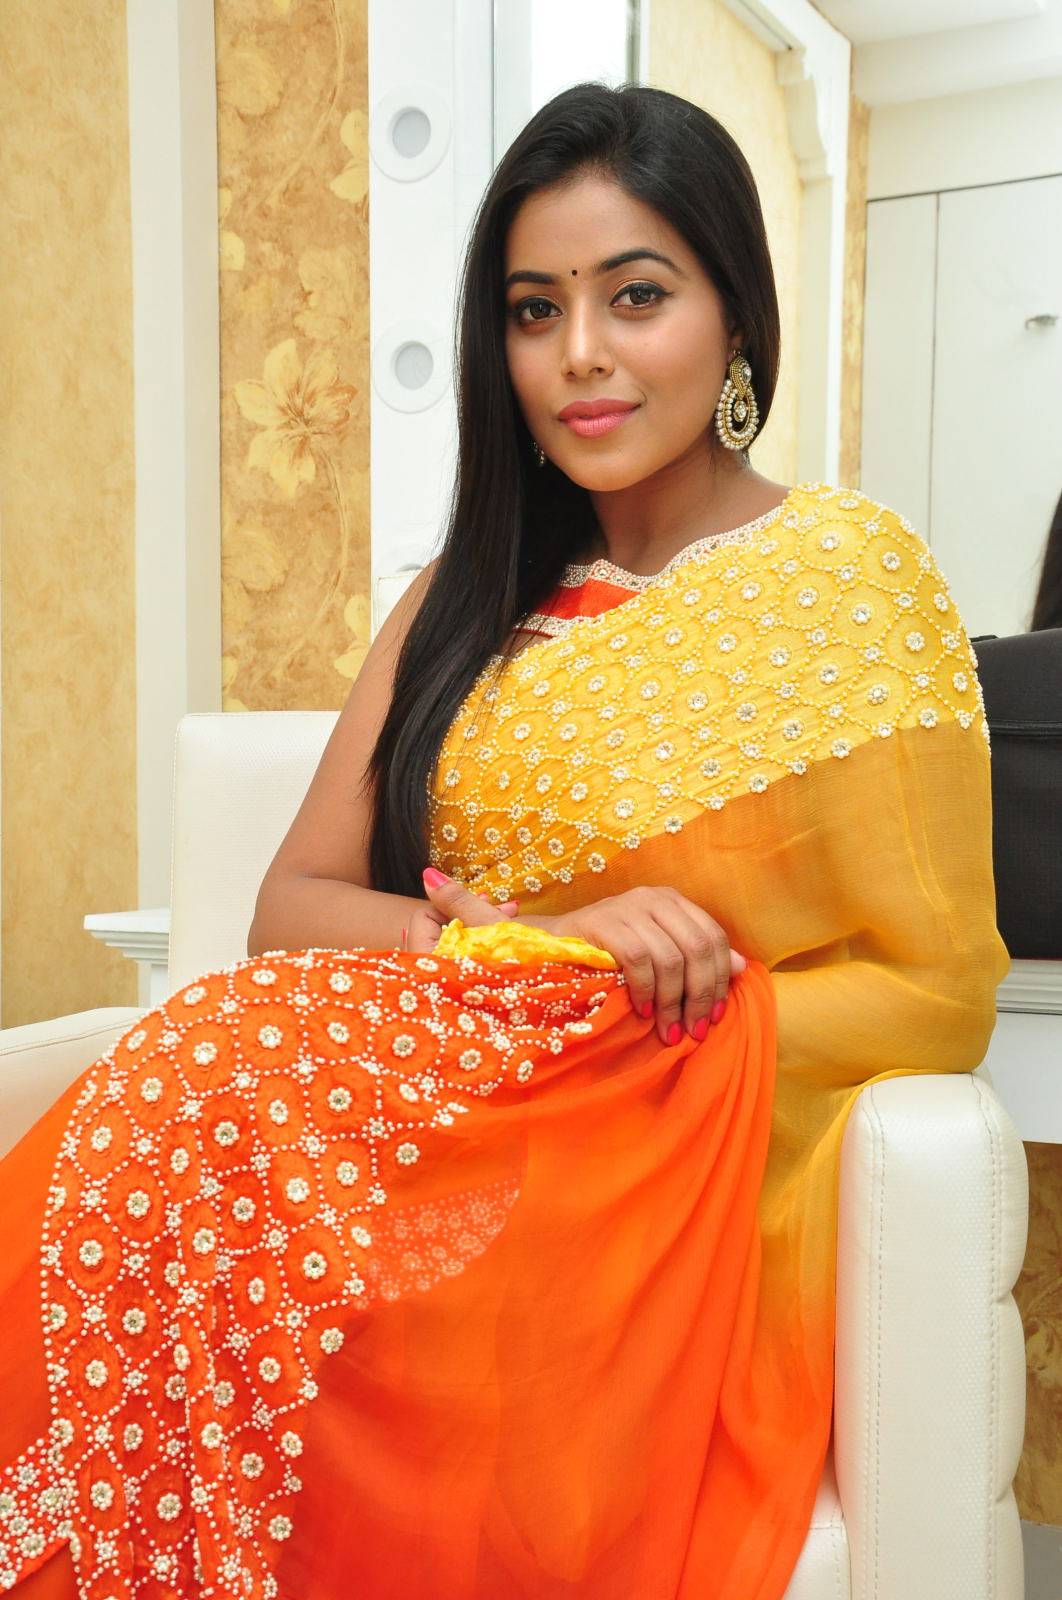 poorna gorgeous photos gallery-HQ-Photo-11